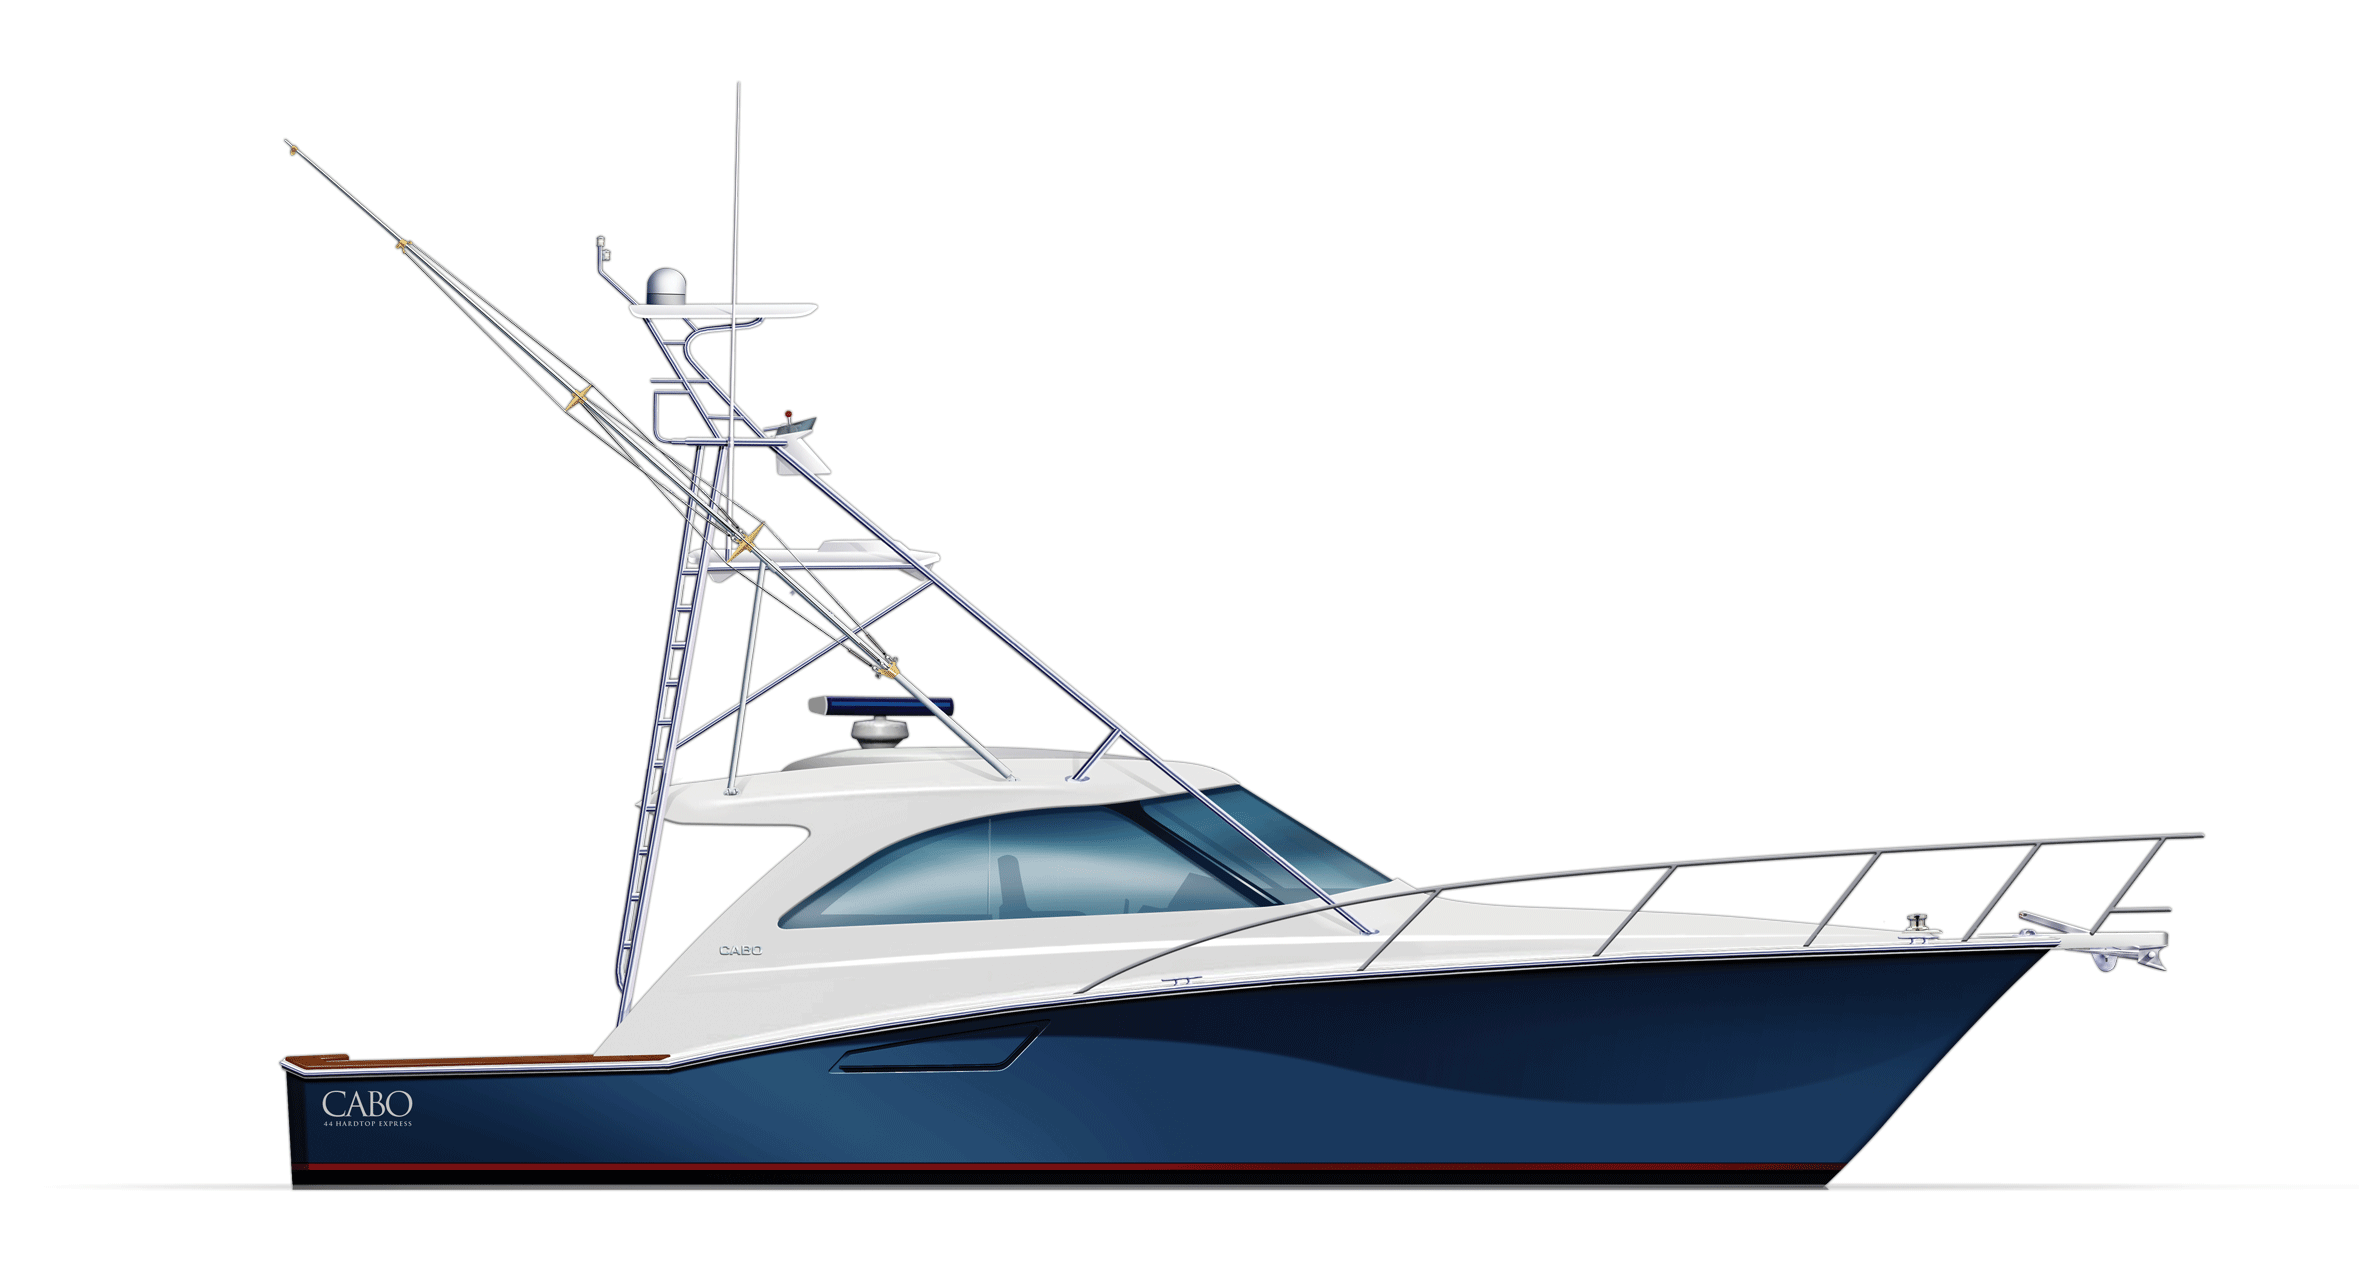 image transparent Yacht clipart transparent background. Cabo yachts boat png